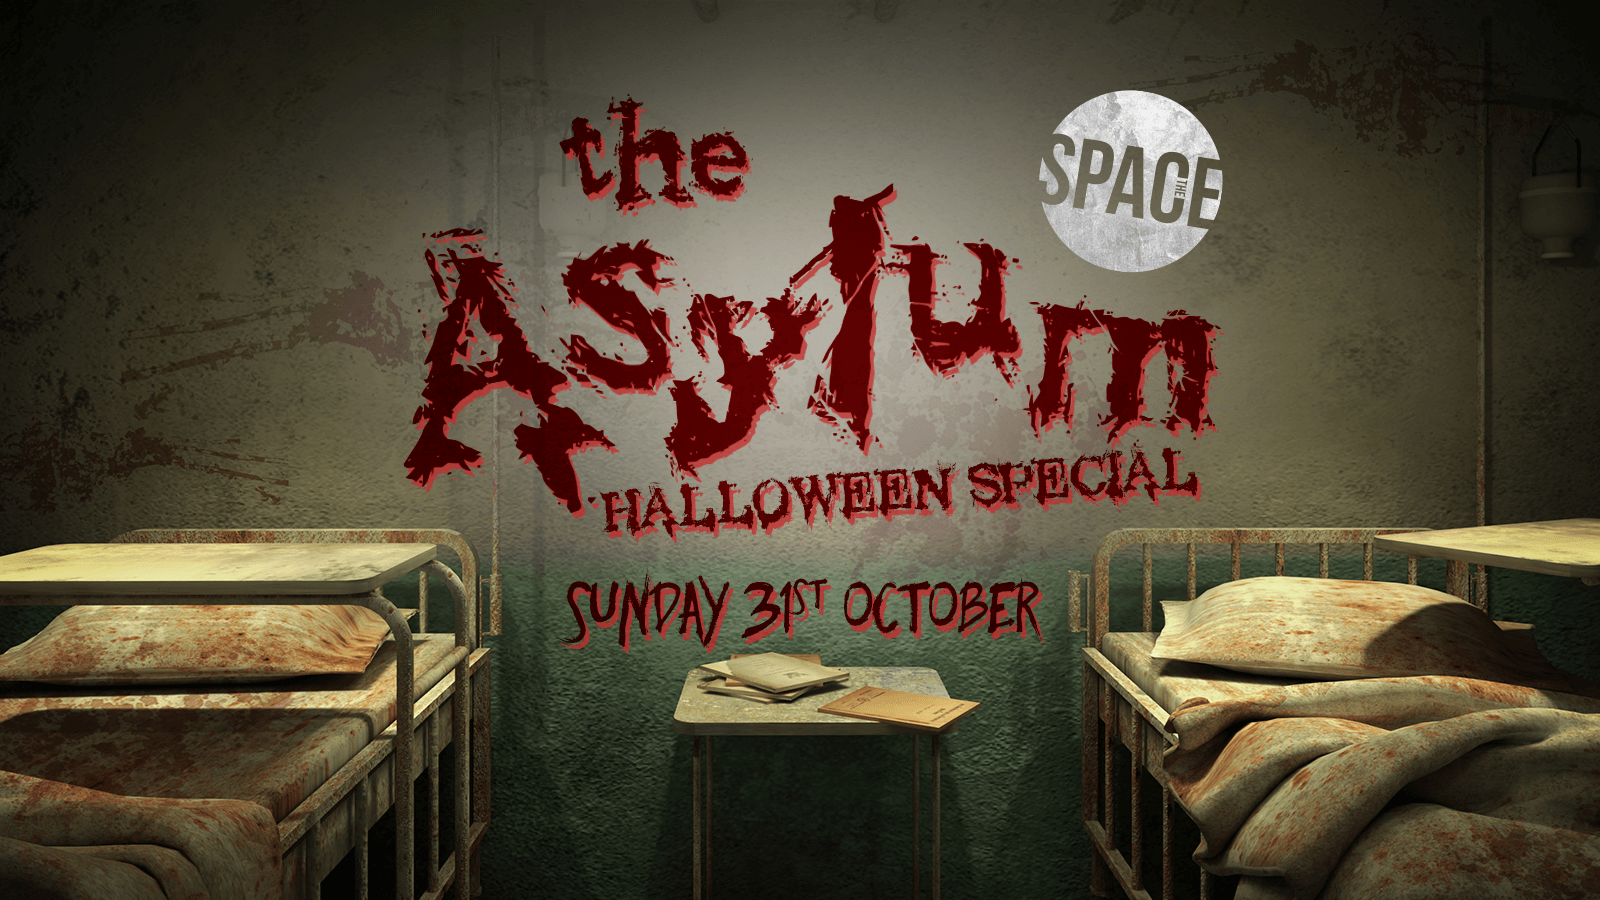 The Asylum Halloween Special at Space –  31st October